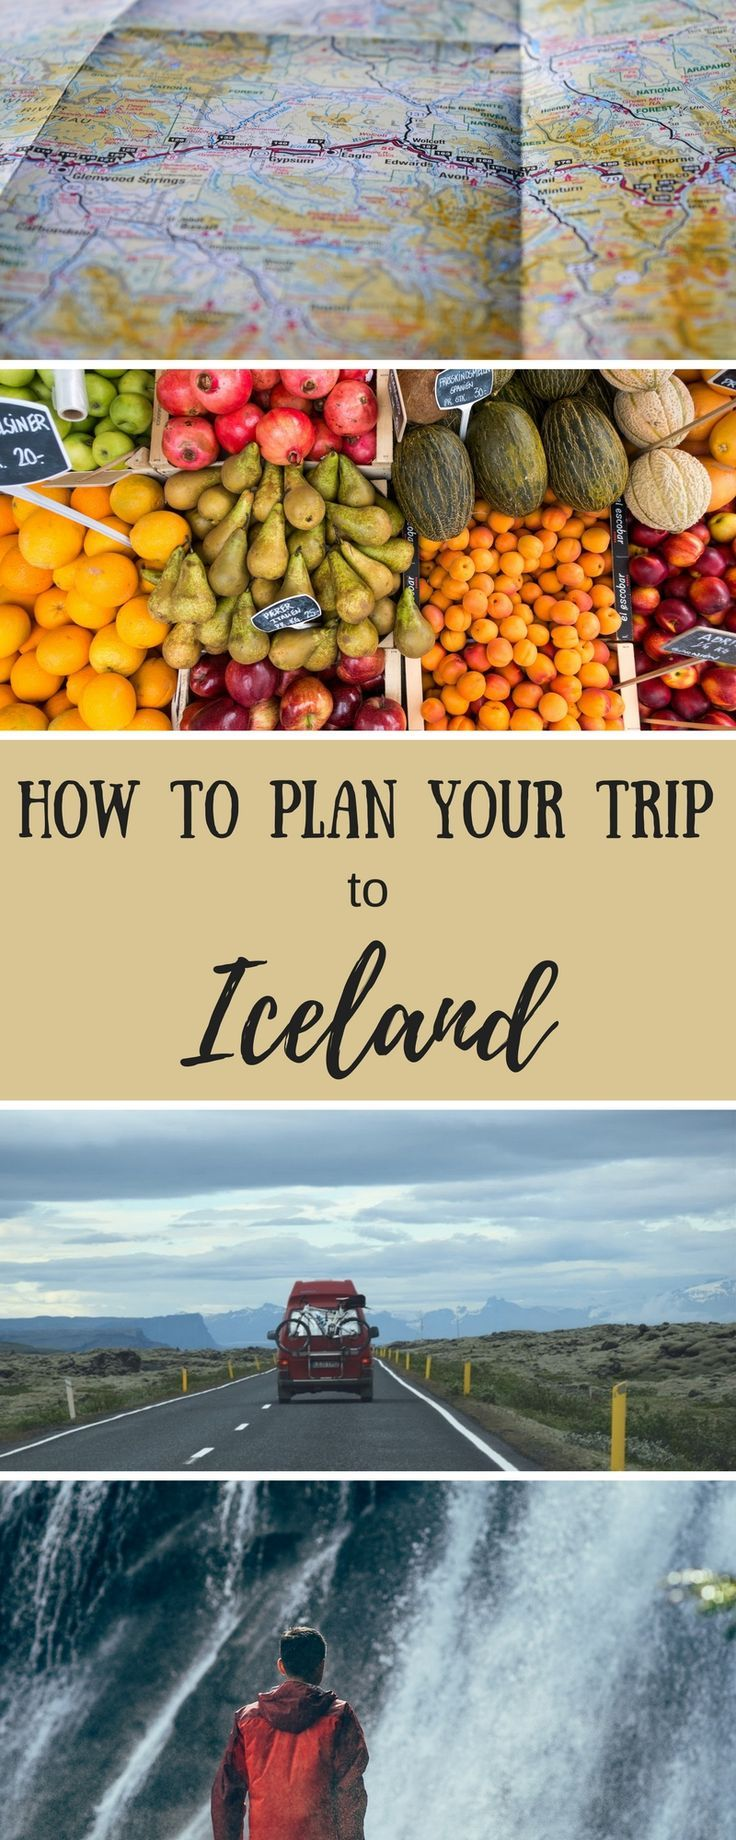 Planning a trip to Iceland? Make sure you know how to plan, what to eat and what…